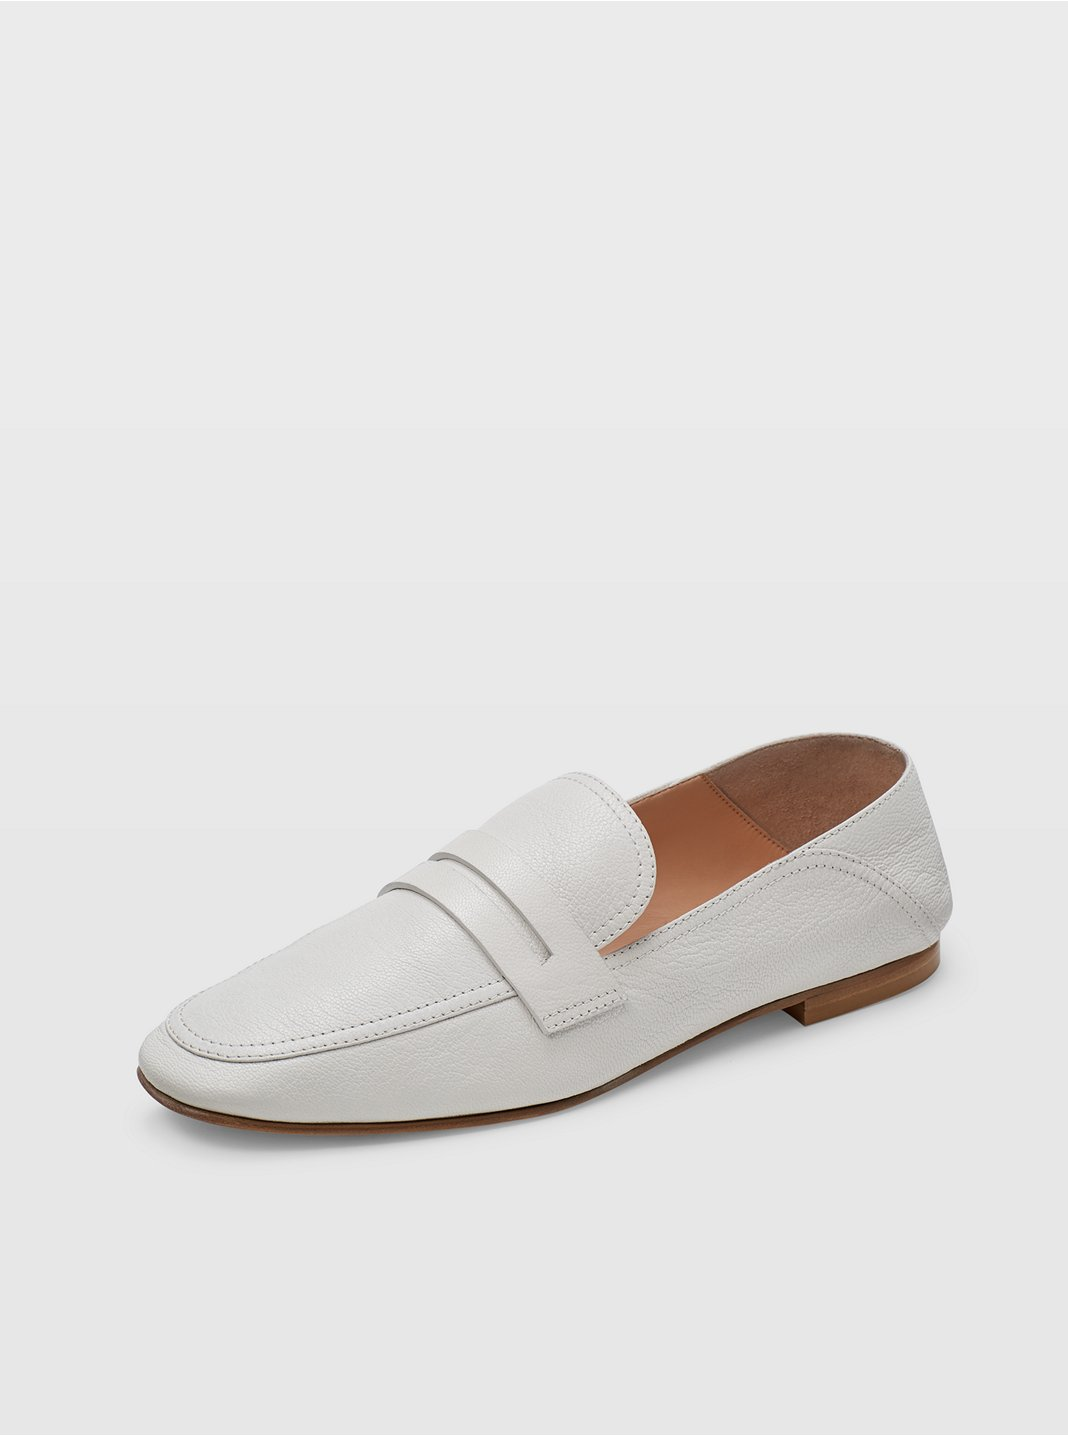 Kedda Leather Loafer